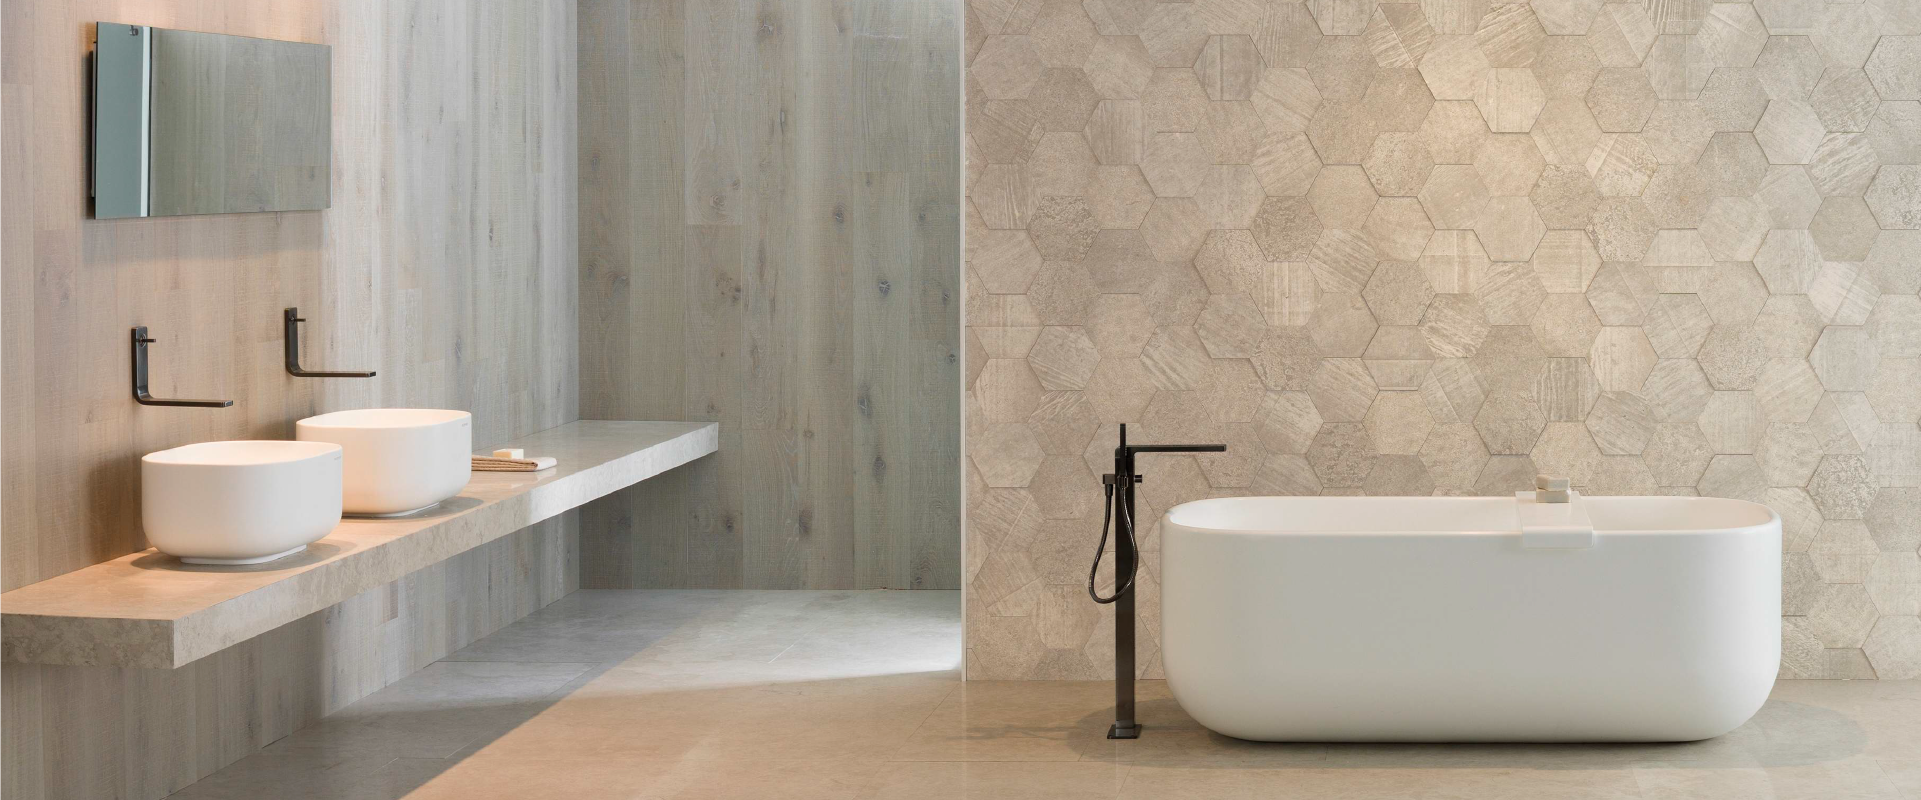 Clearstile_Bathroom_Furniture_and_tiles_Kildare_Dublin_header_image-15